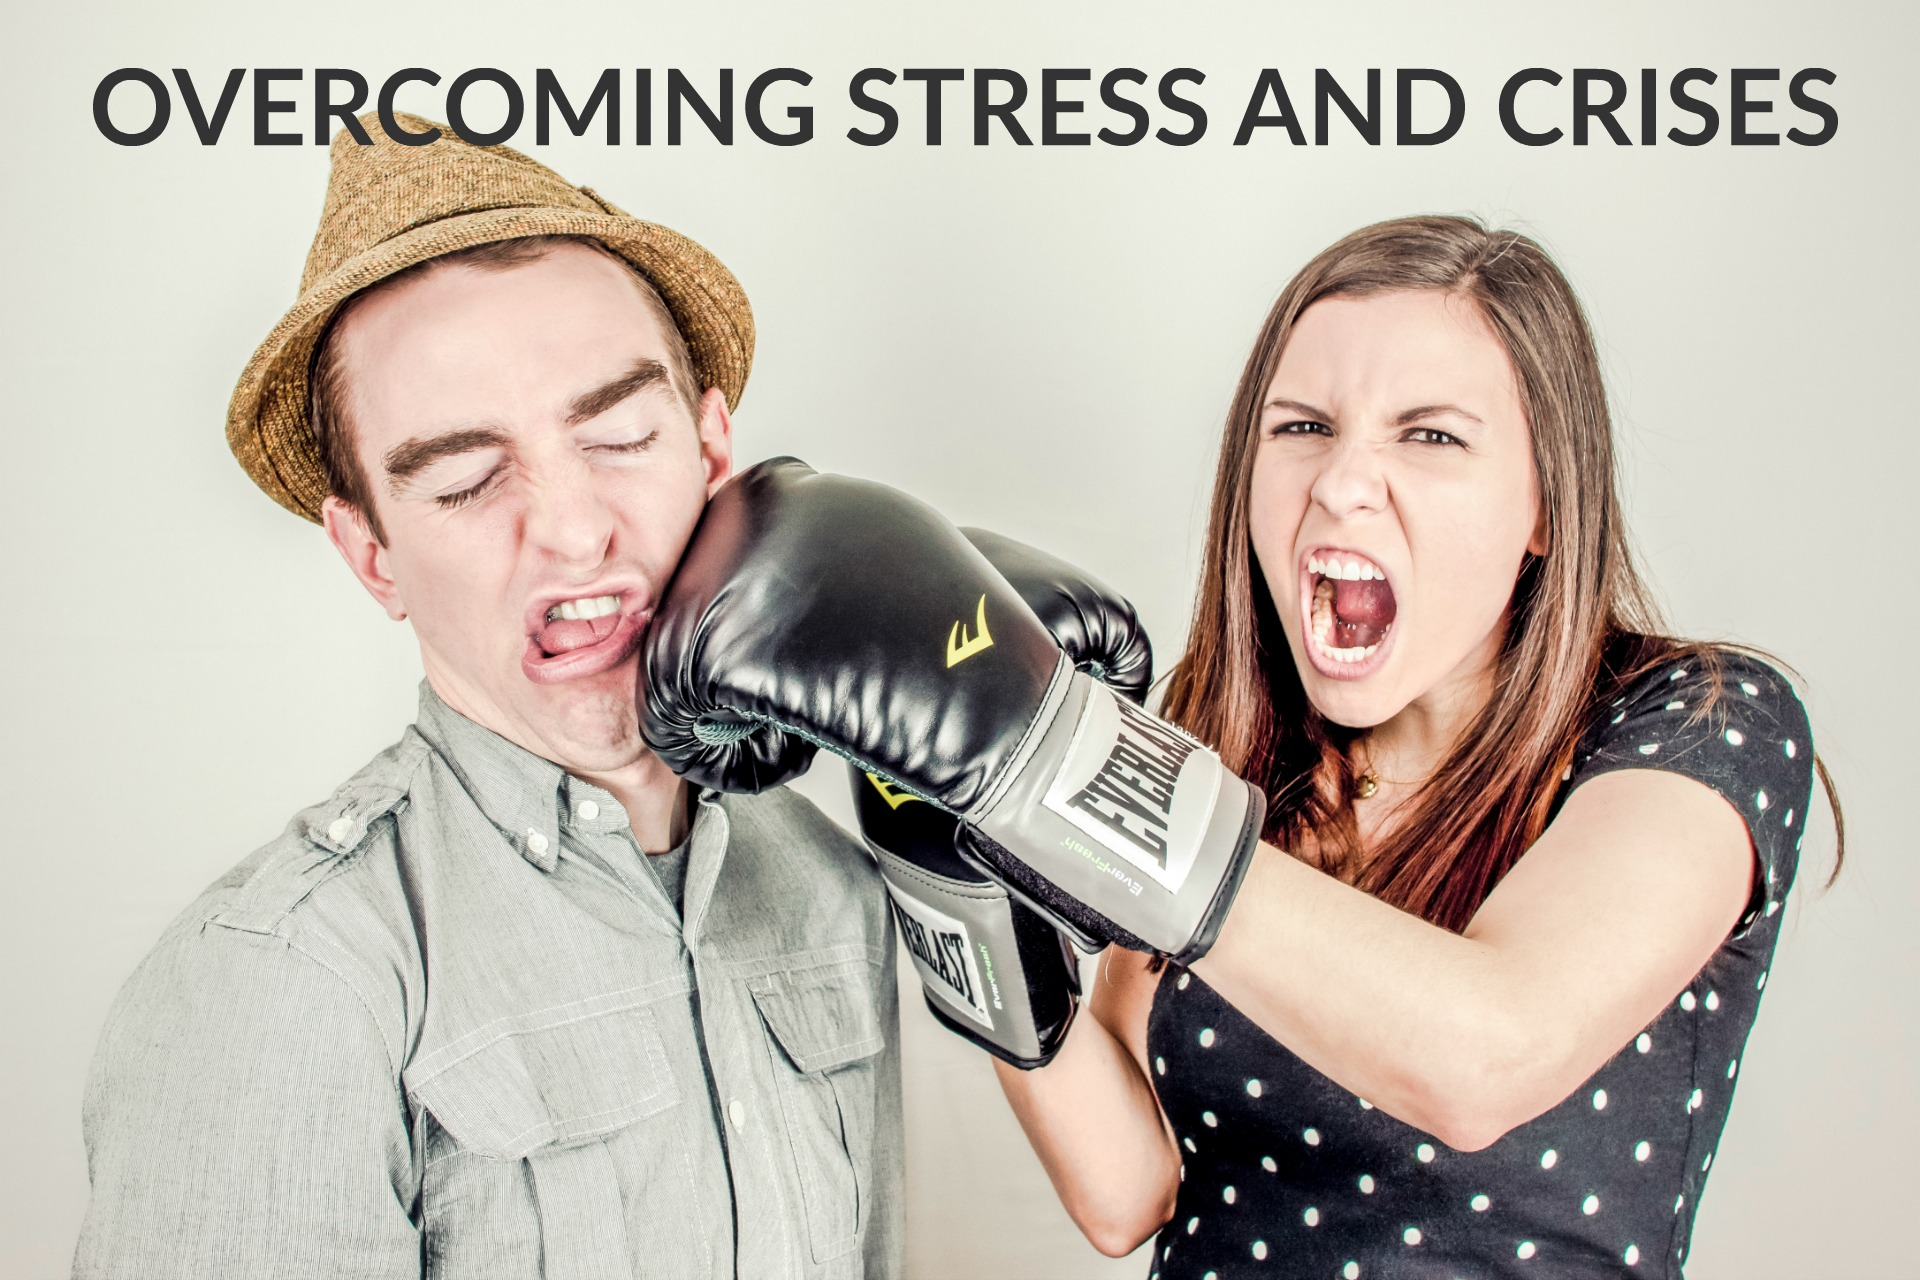 Overcoming Stress and Crises